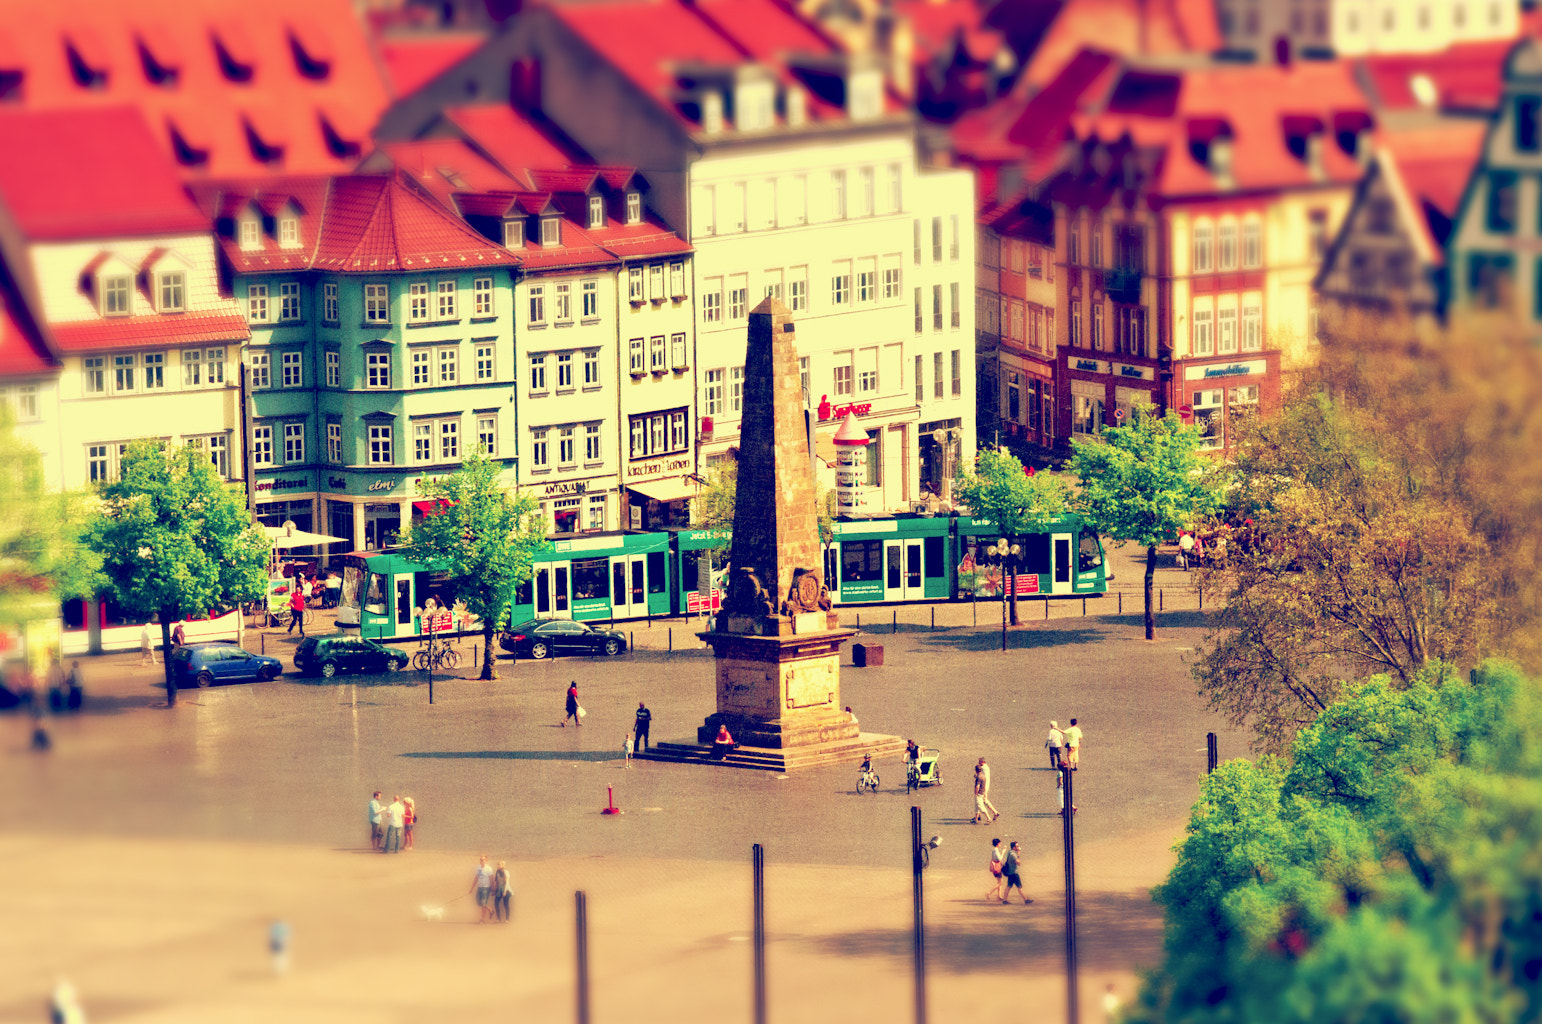 Photograph Model tram (Erfurt Cathedral Square.) by Felix W. Sch on 500px